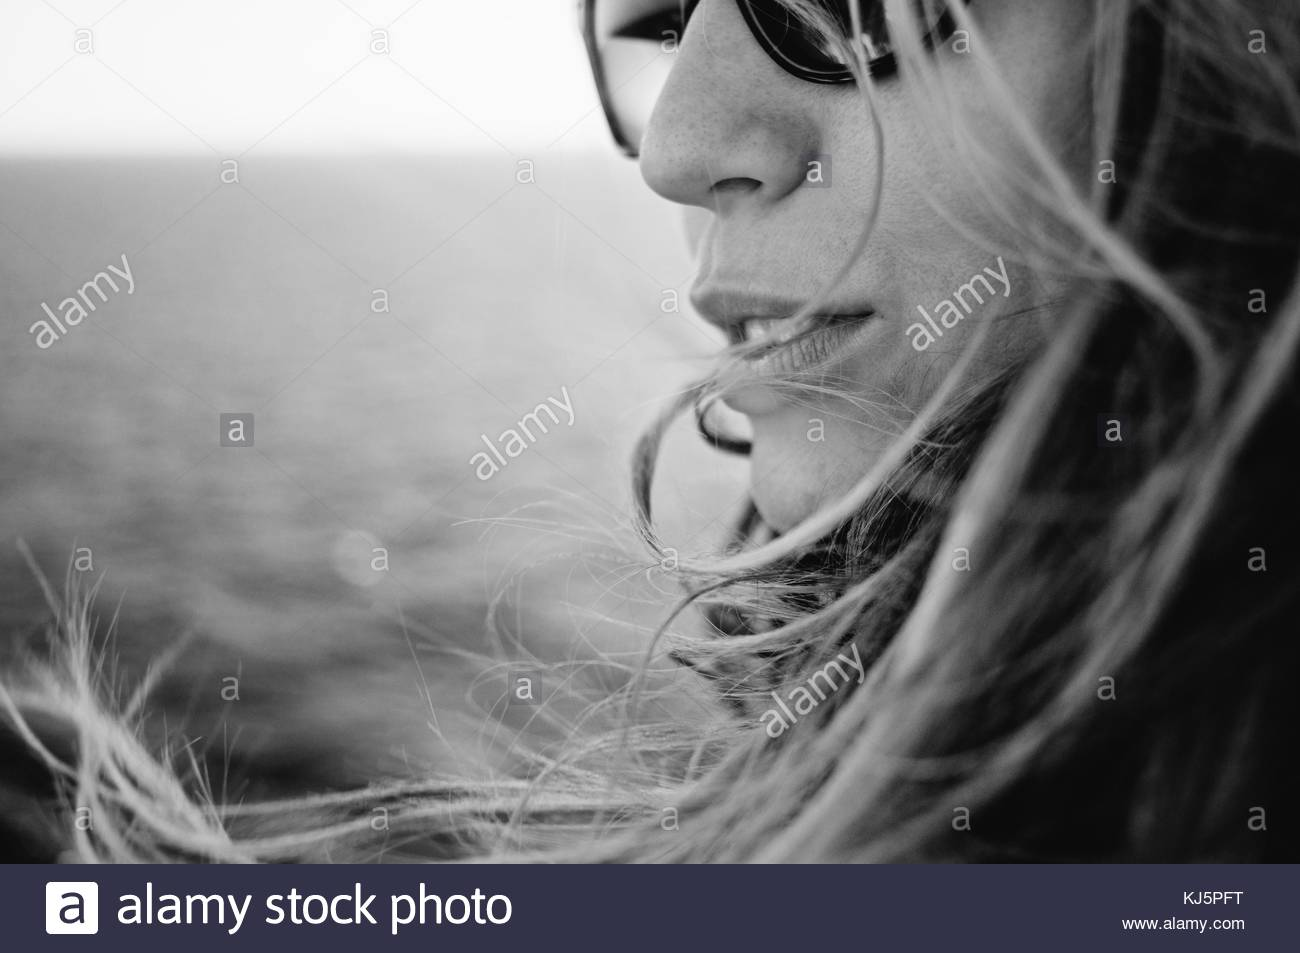 Smiling woman with long hair and sunglasses - Stock Image